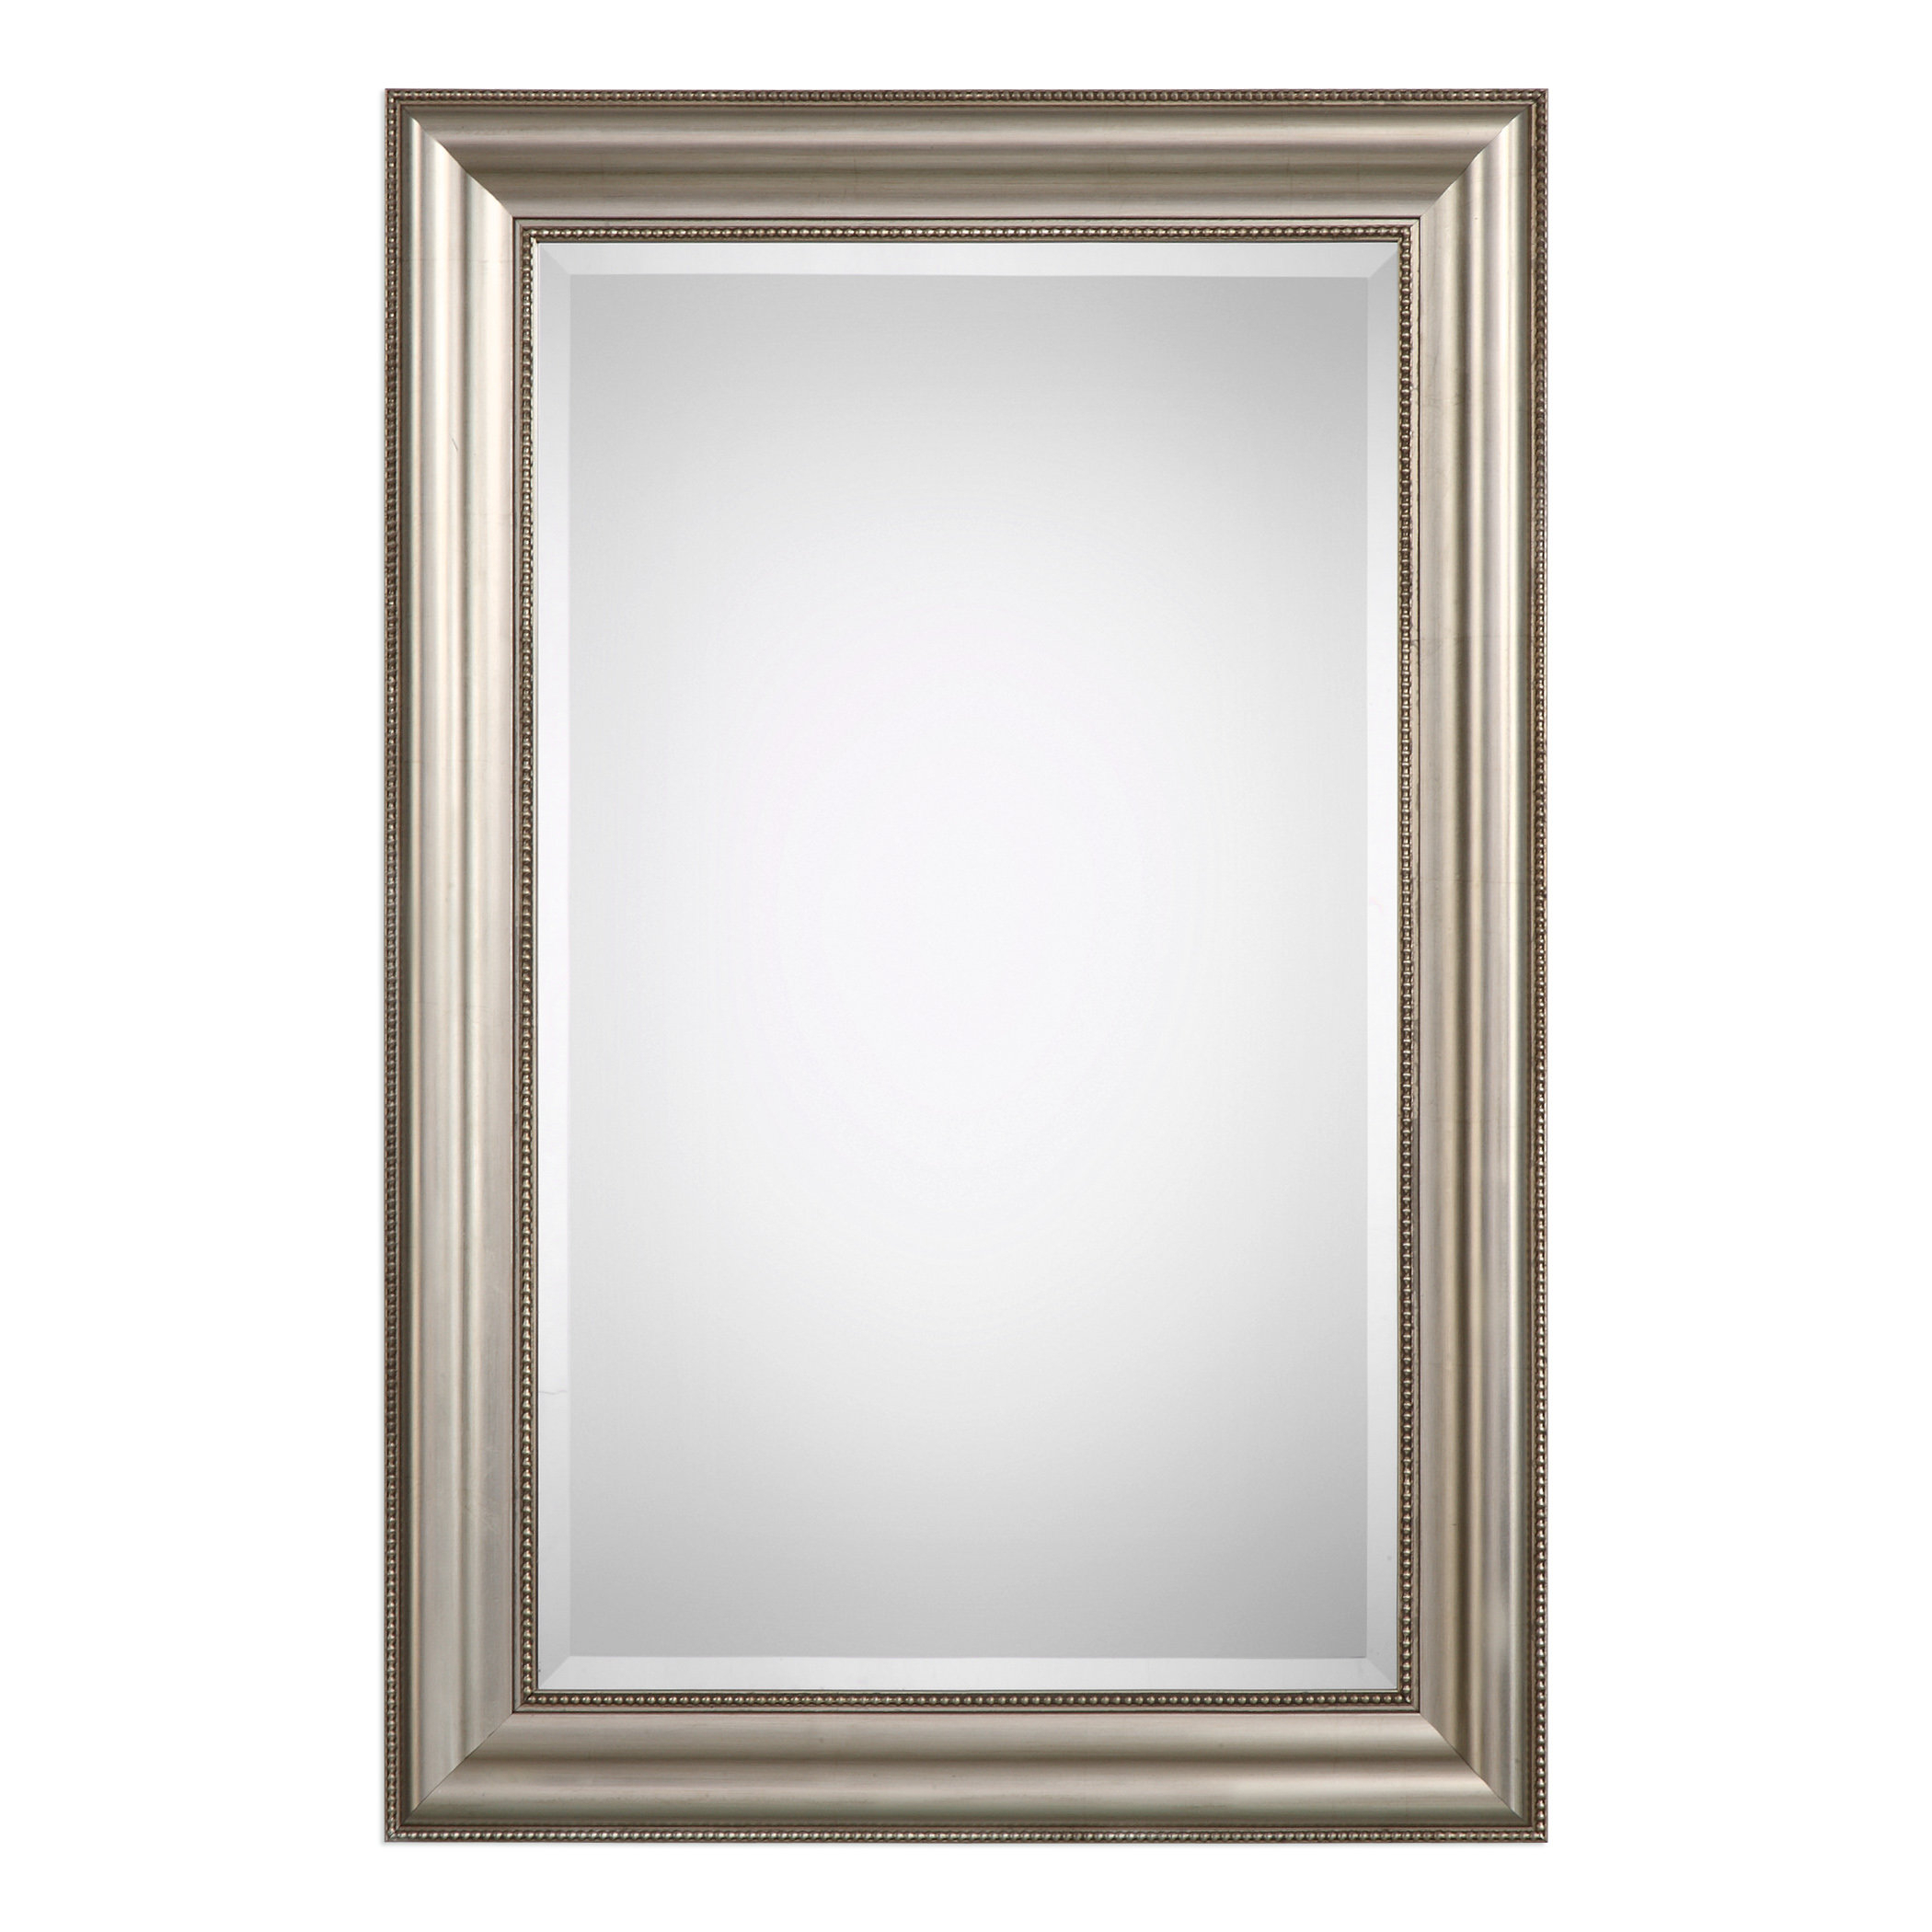 Farmhouse Mirrors | Birch Lane With Medallion Accent Mirrors (View 12 of 30)